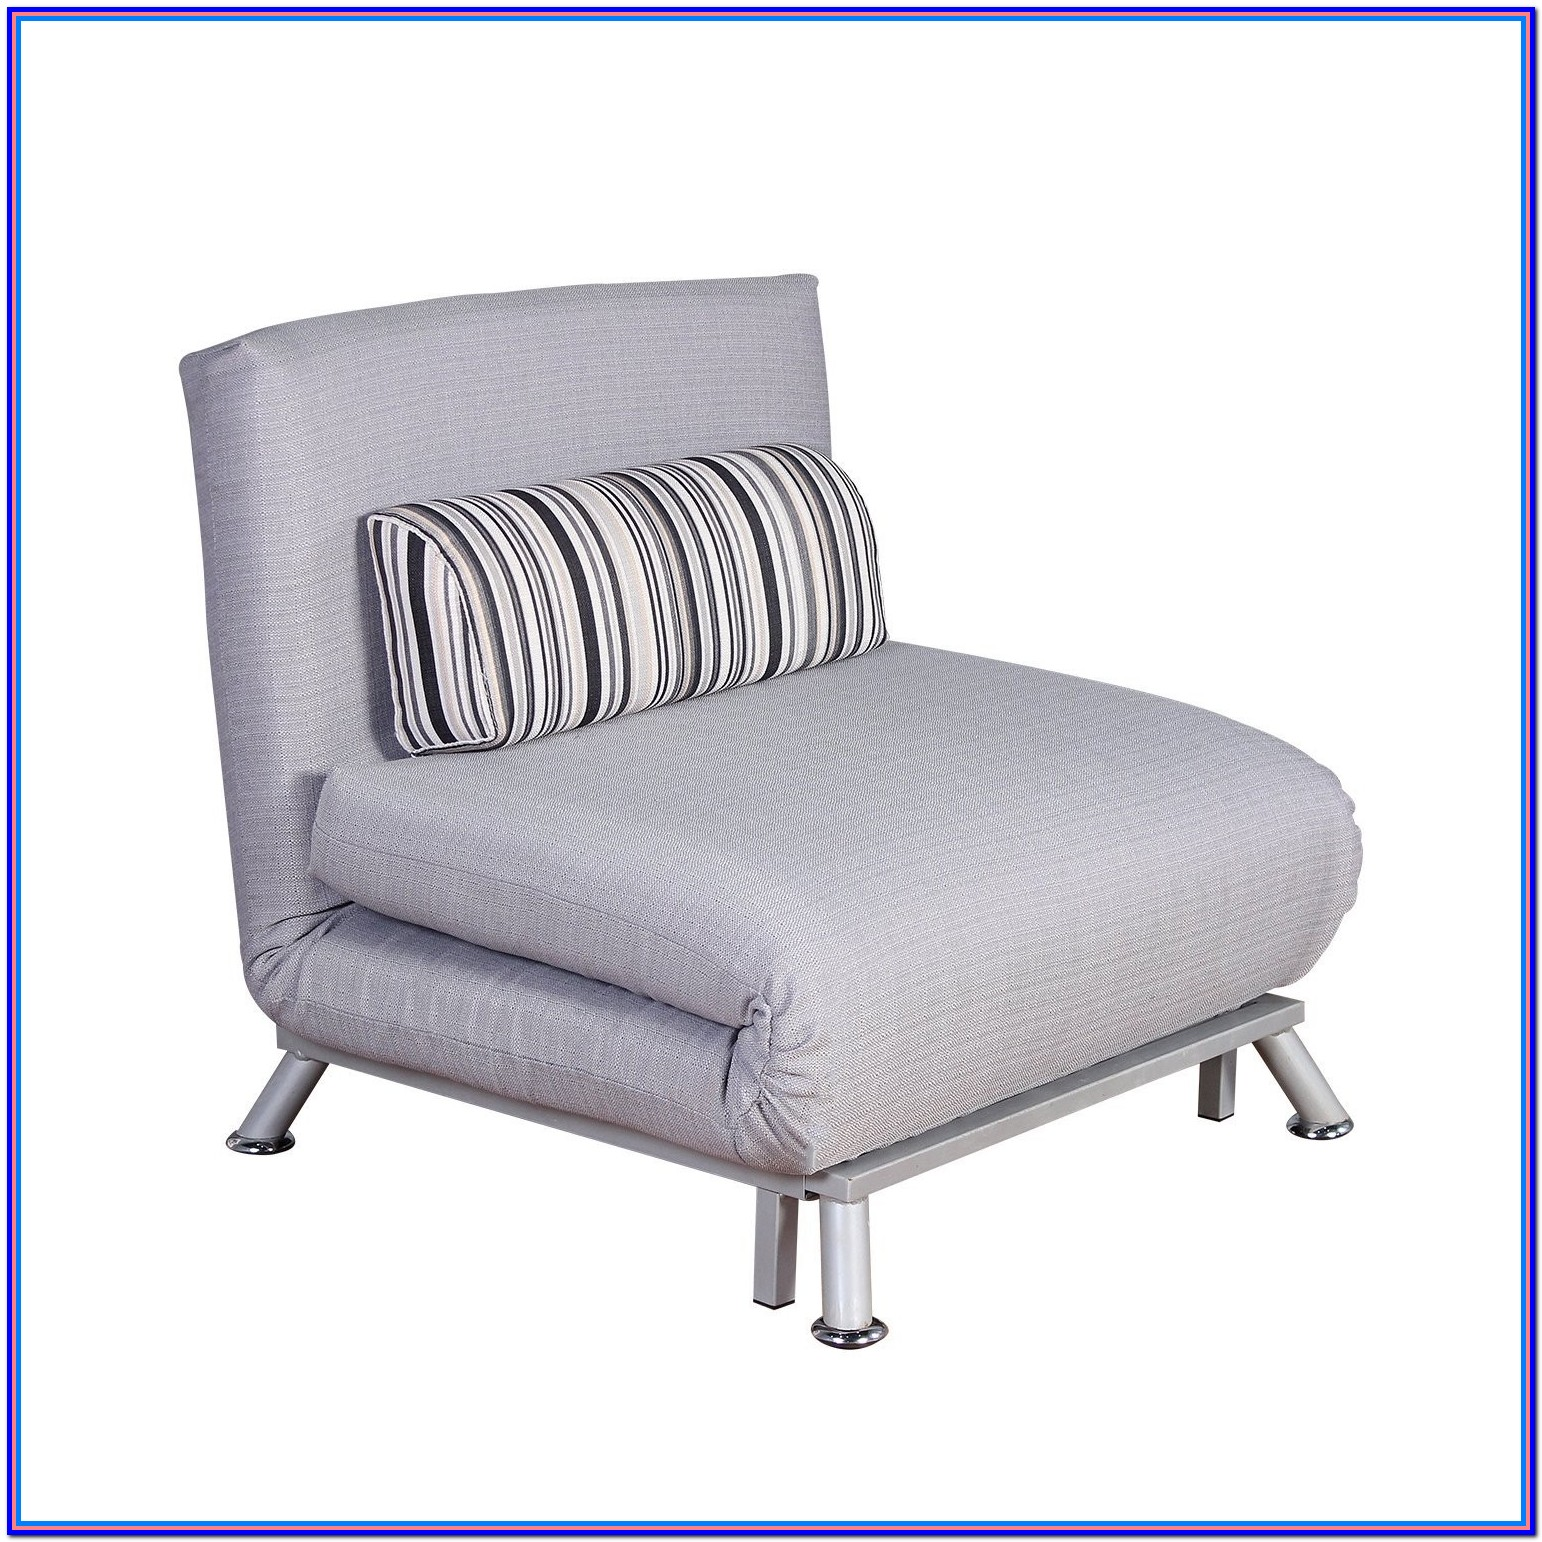 Fold Out Couch Bed Mattress